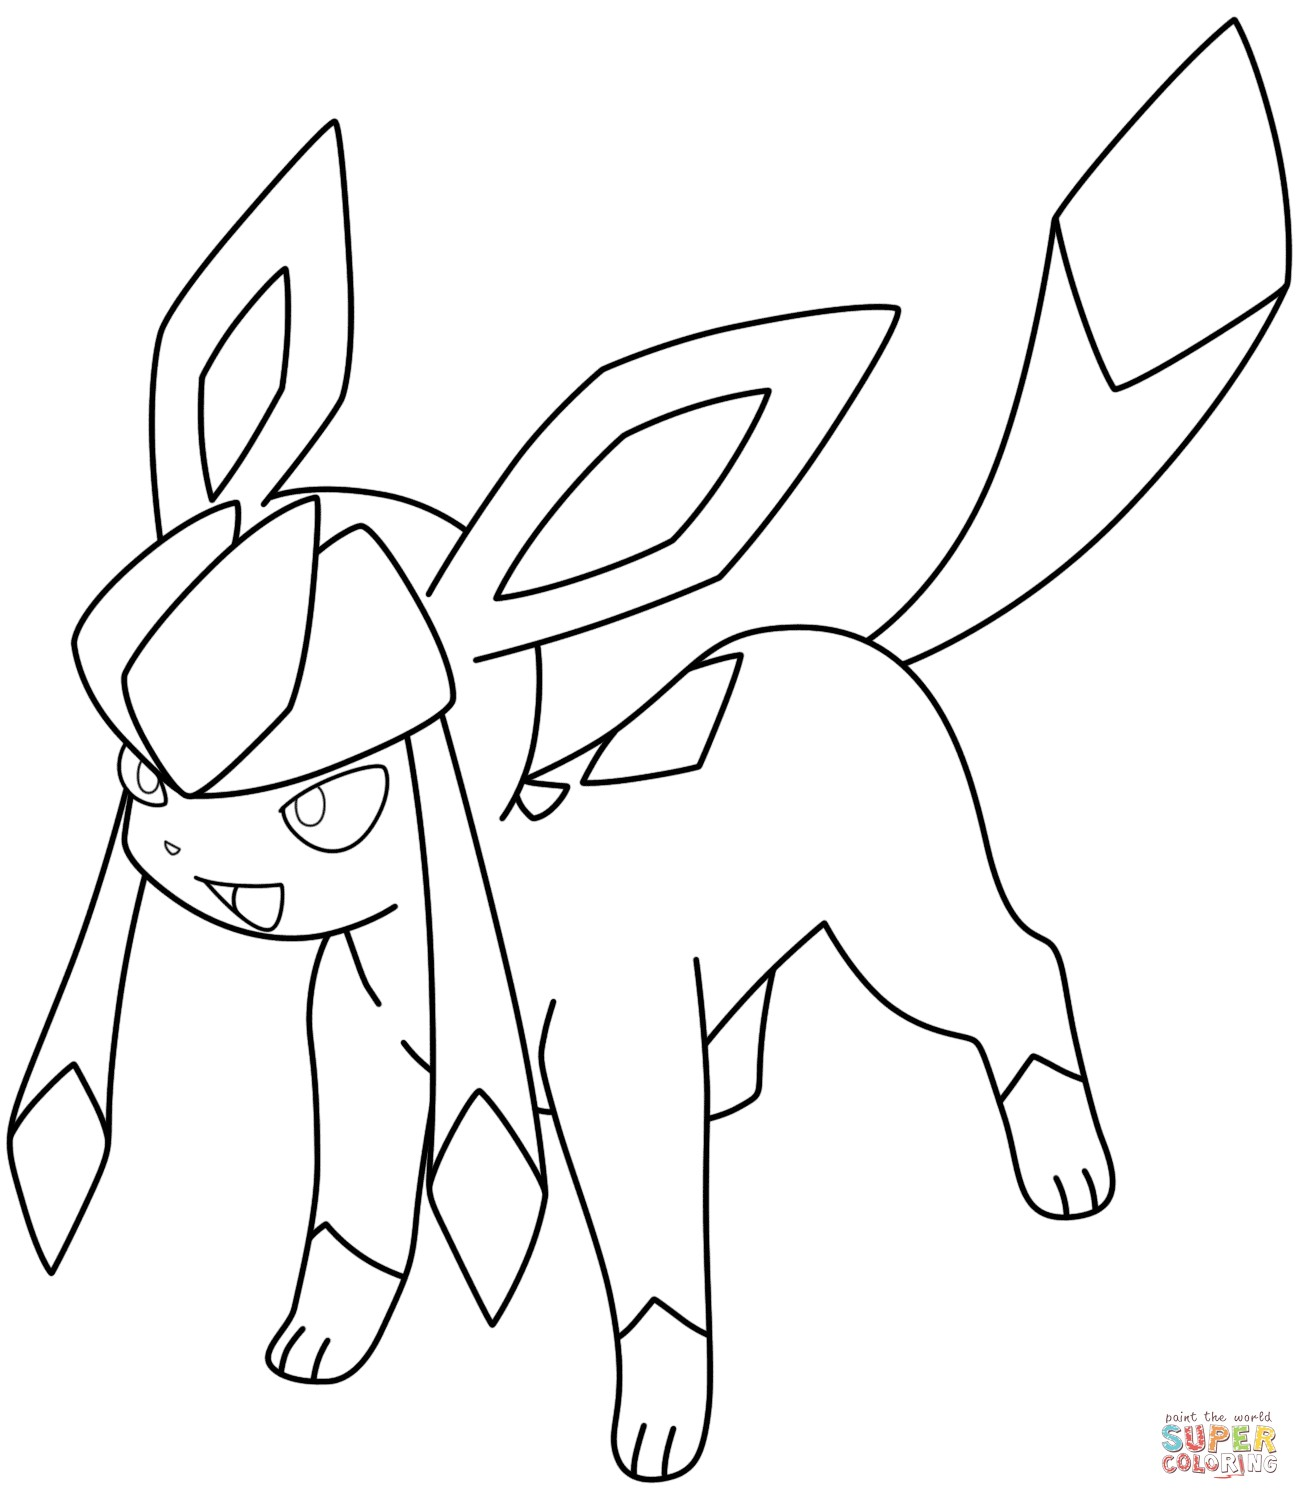 1300x1500 Coloring Pages Draw Easy Pokemon Awesome Glaceon Pokemon Coloring